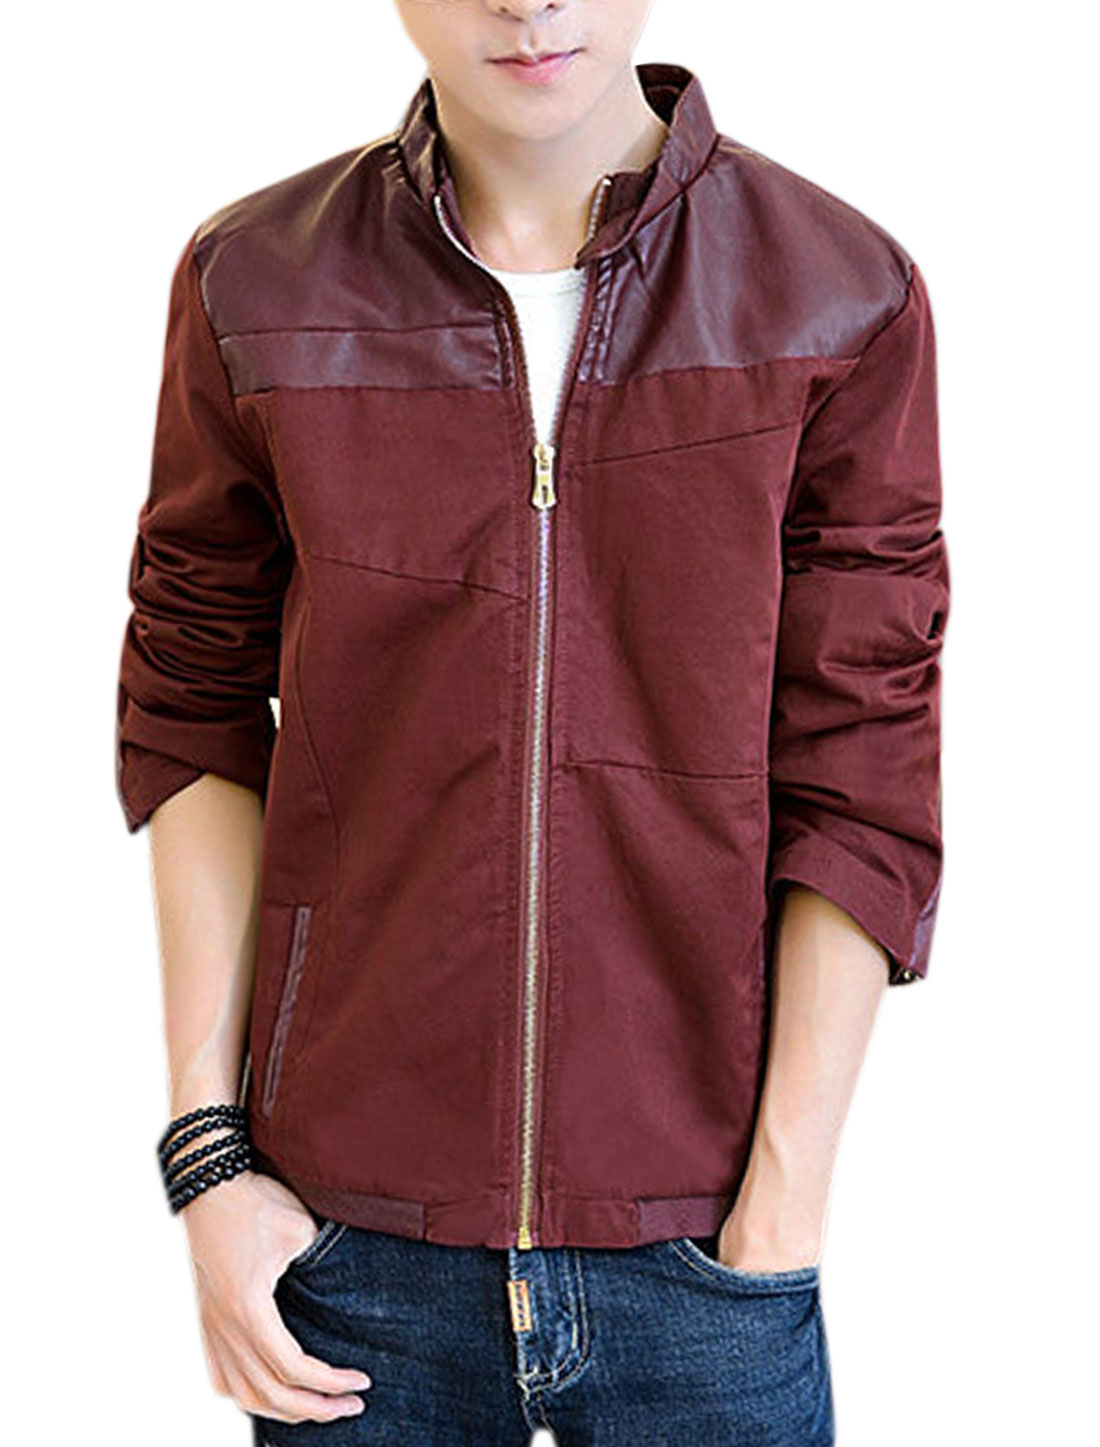 Men Imitation Leather Panel Stand Collar Long Sleeves Jacket Burgundy M